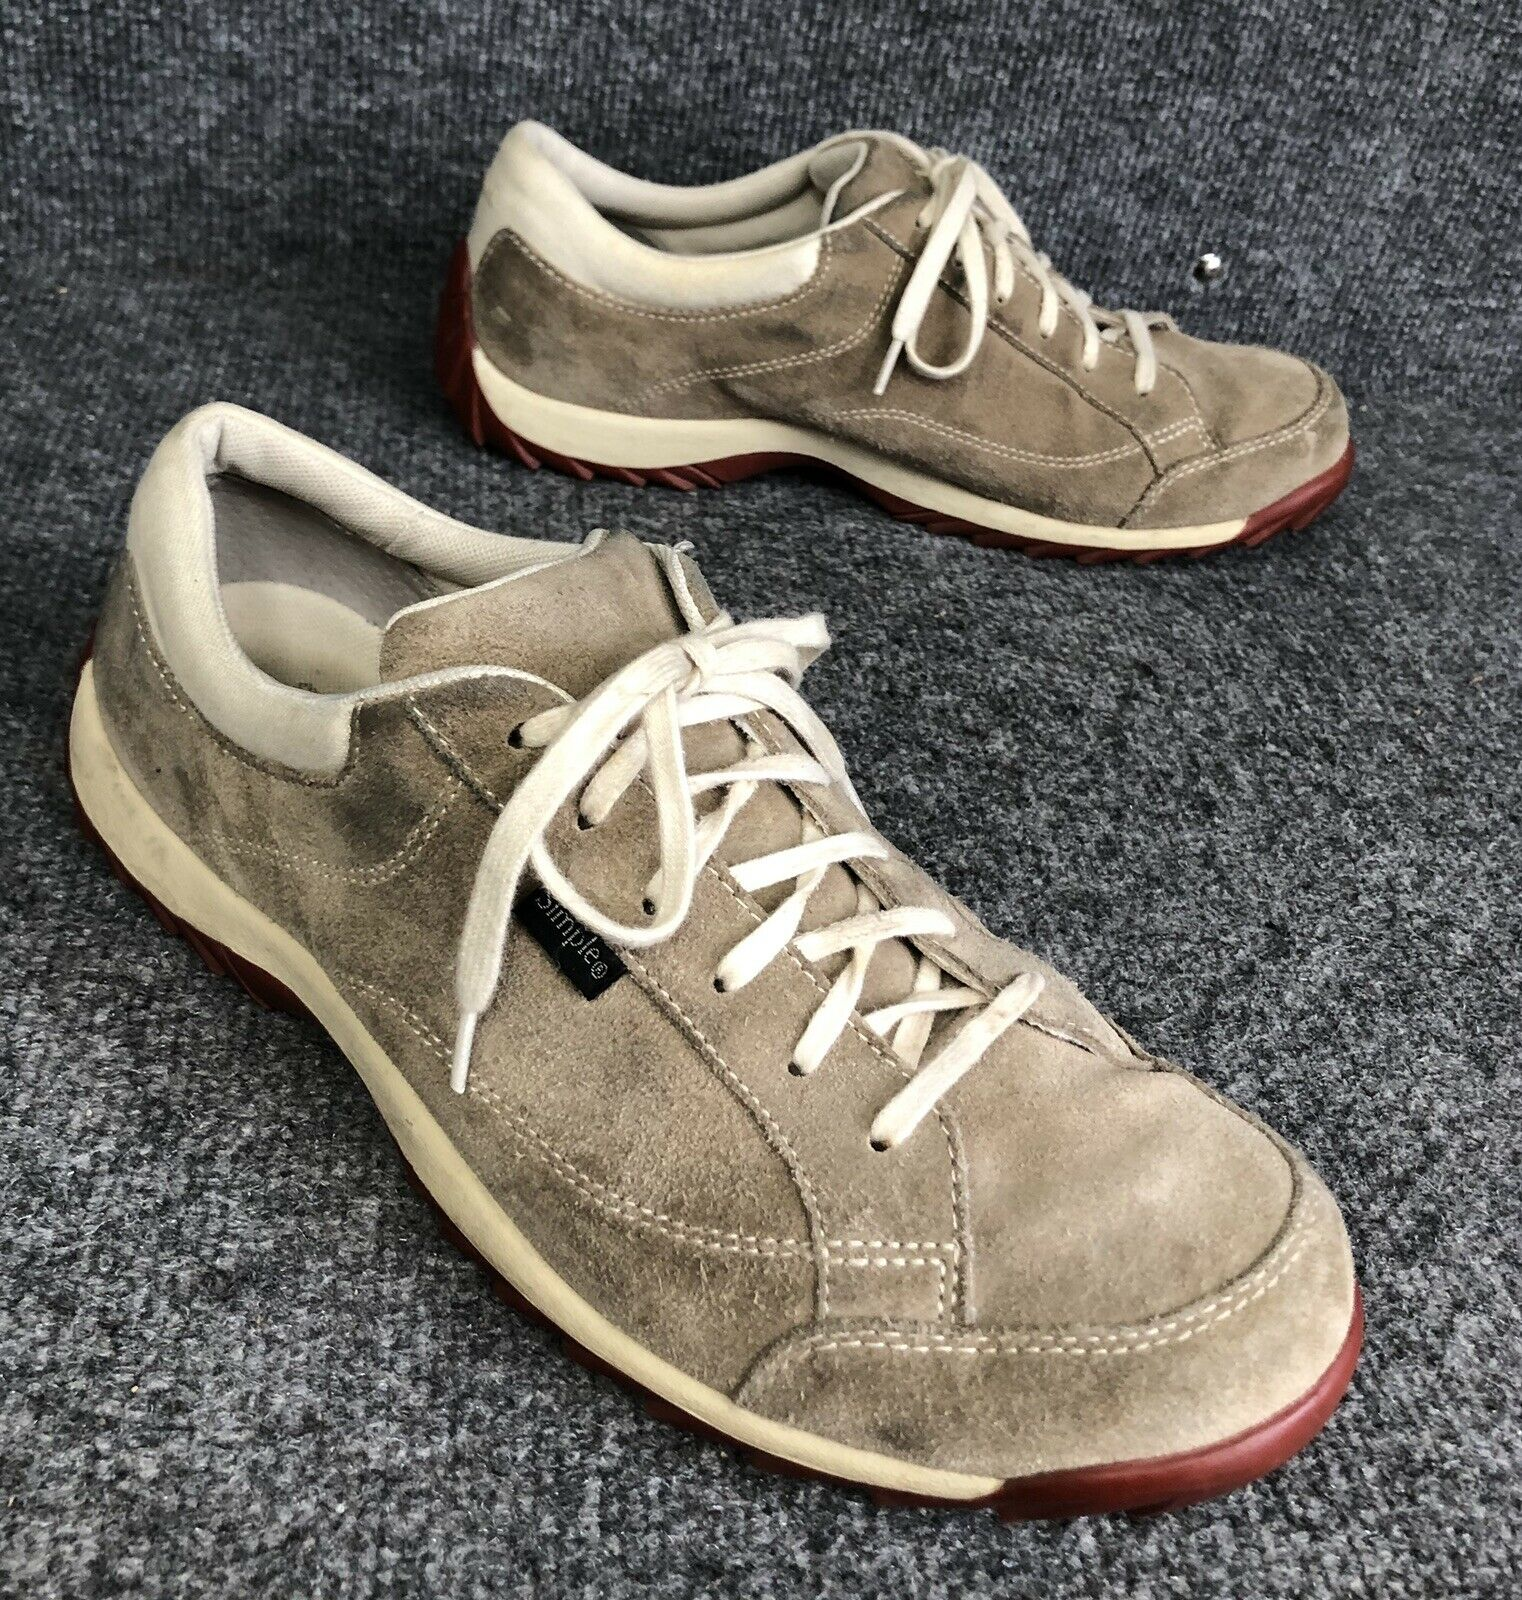 Simple Casual Suede Lace Up Fashion Sneakers Womens shoes Size 11 In EUC